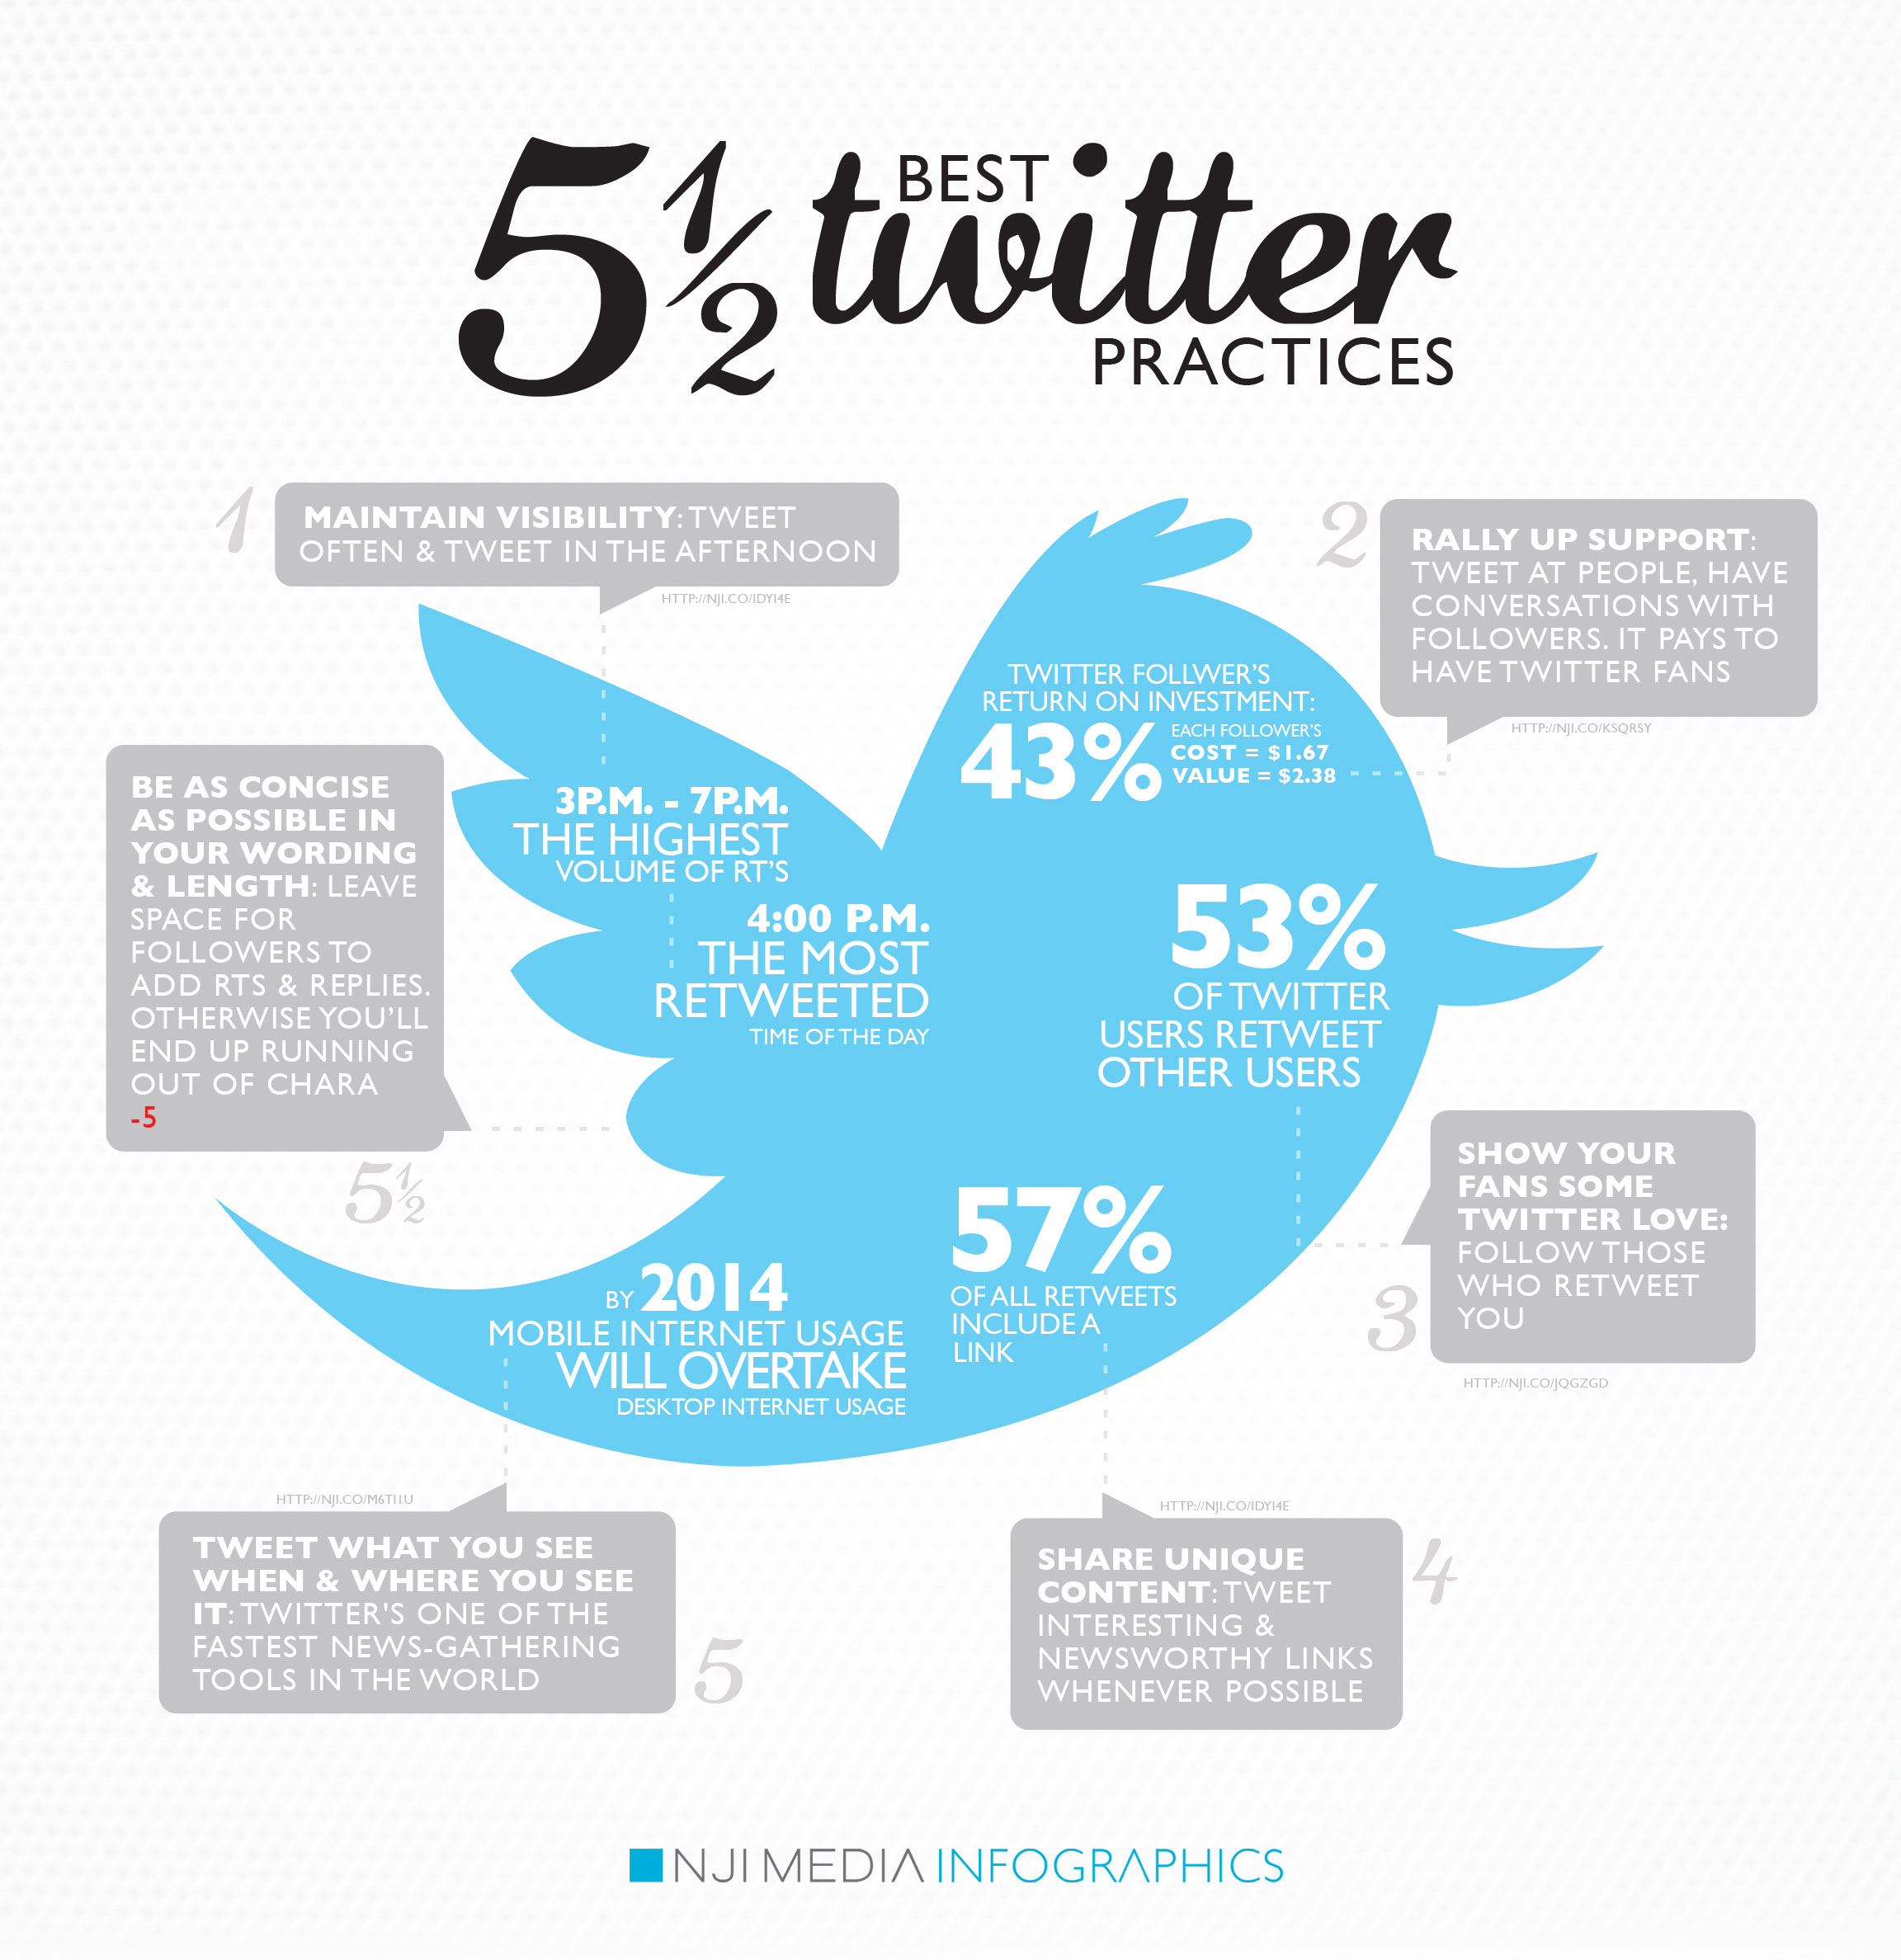 5½-Best-Twitter-Practices-Infographic